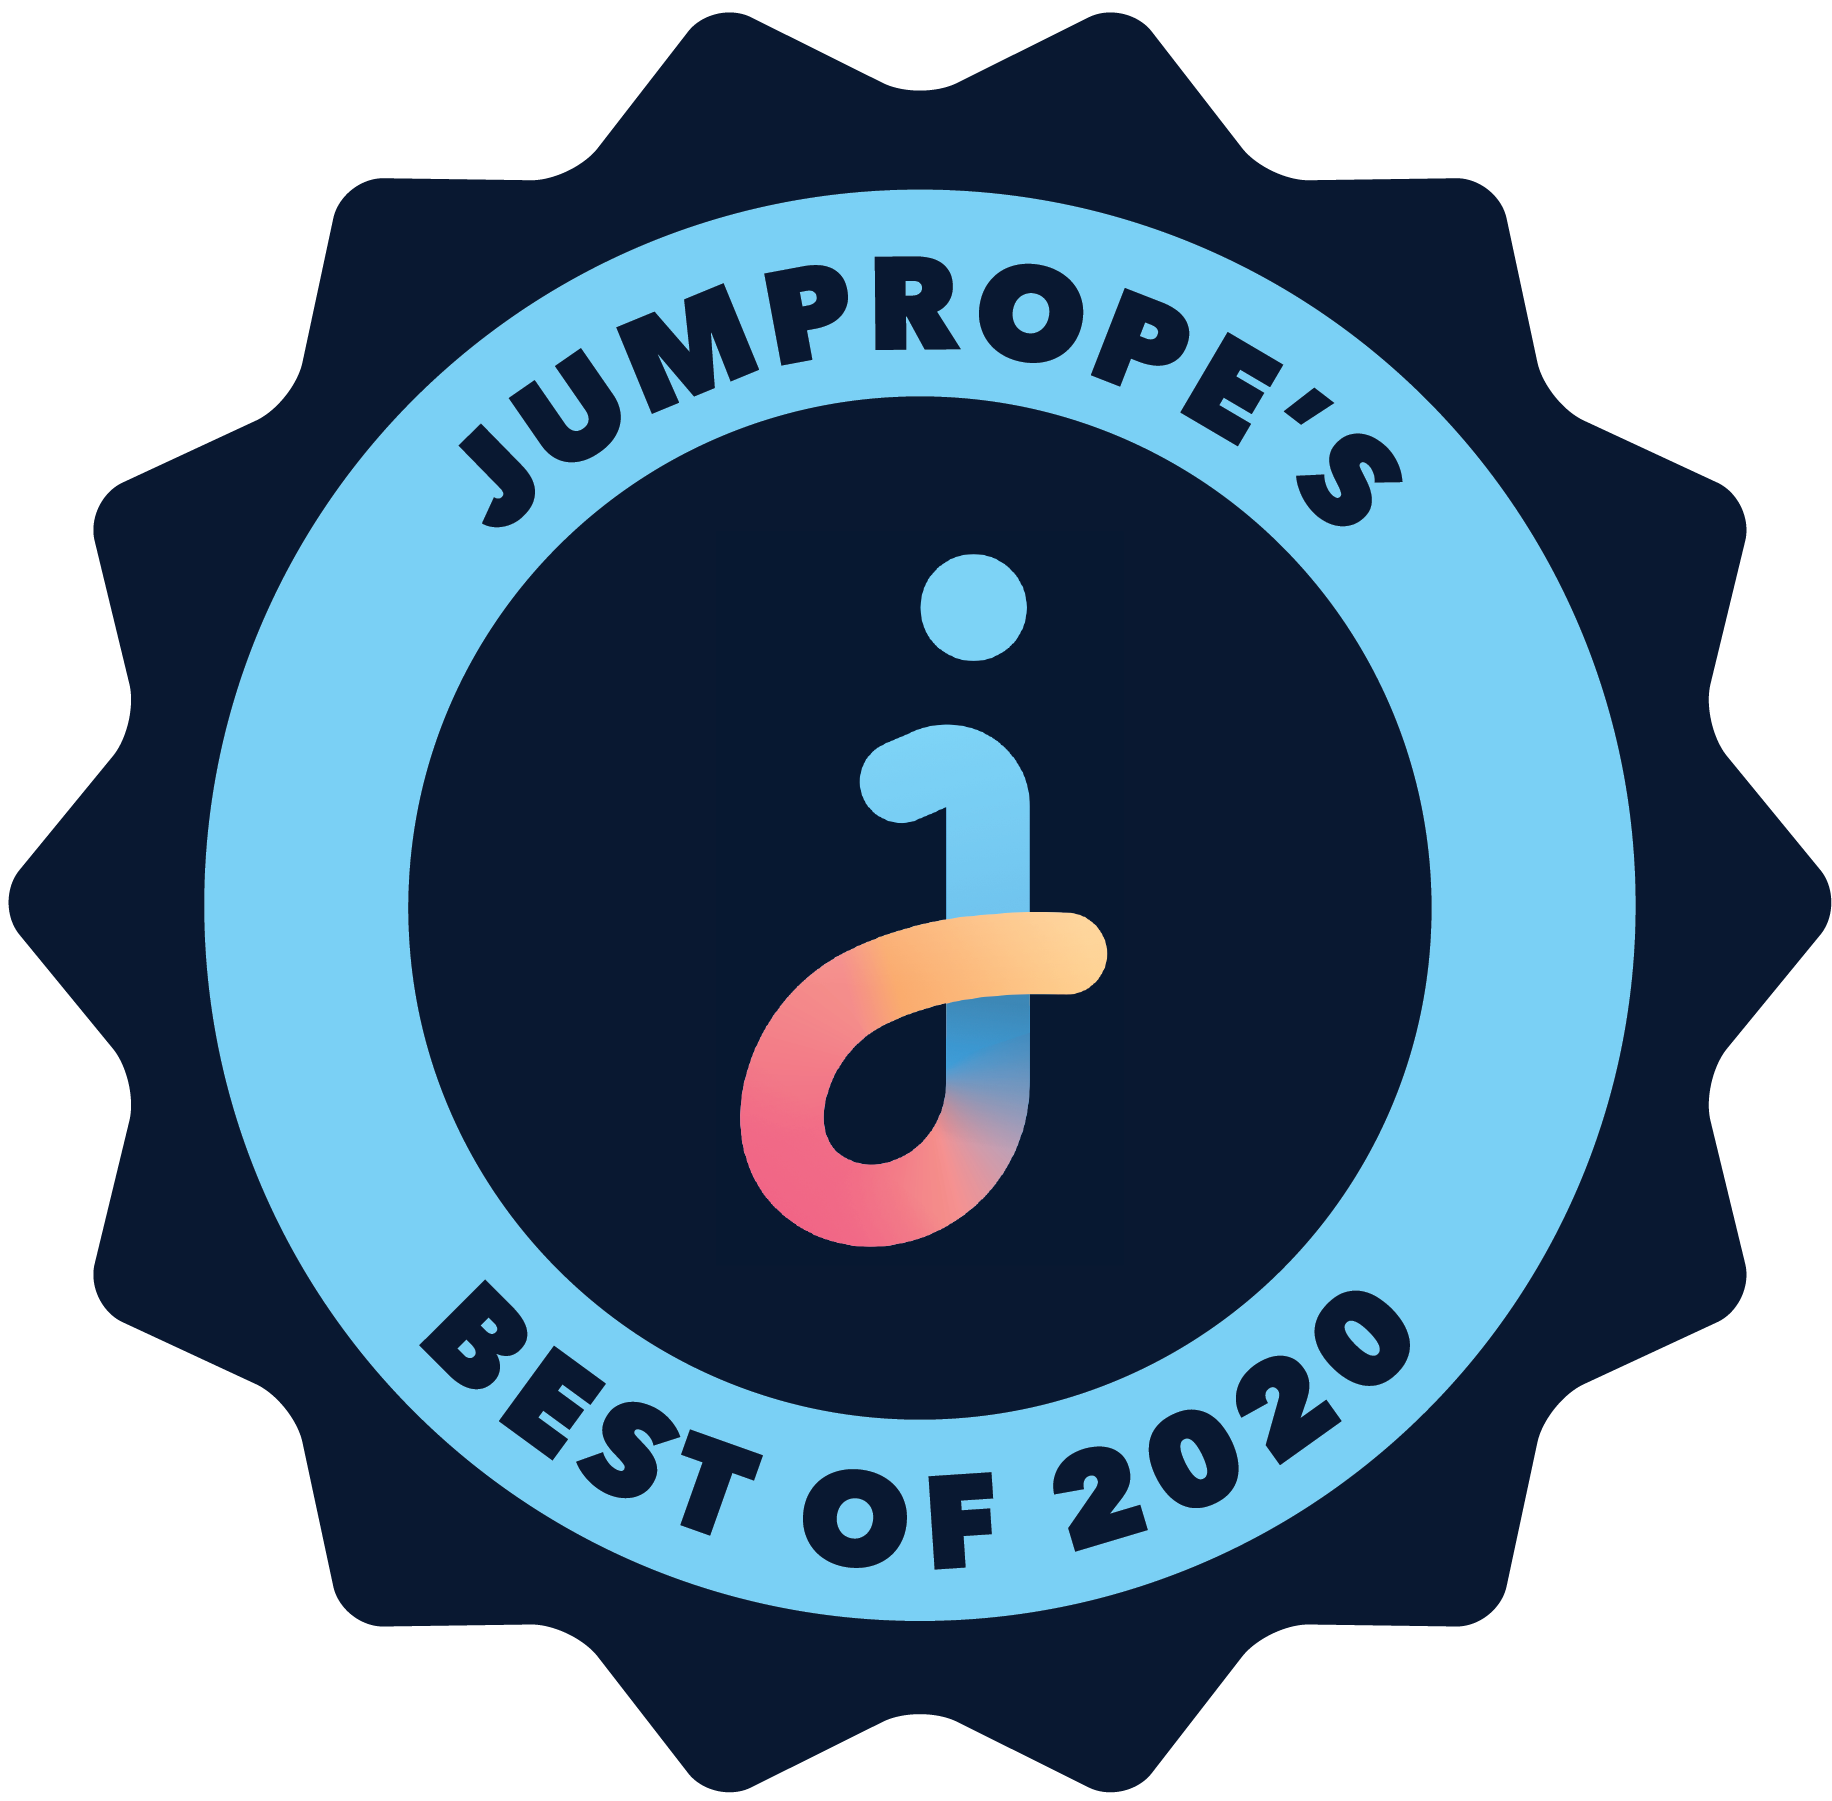 "Jumprope's ""Best of 2020"" badge."